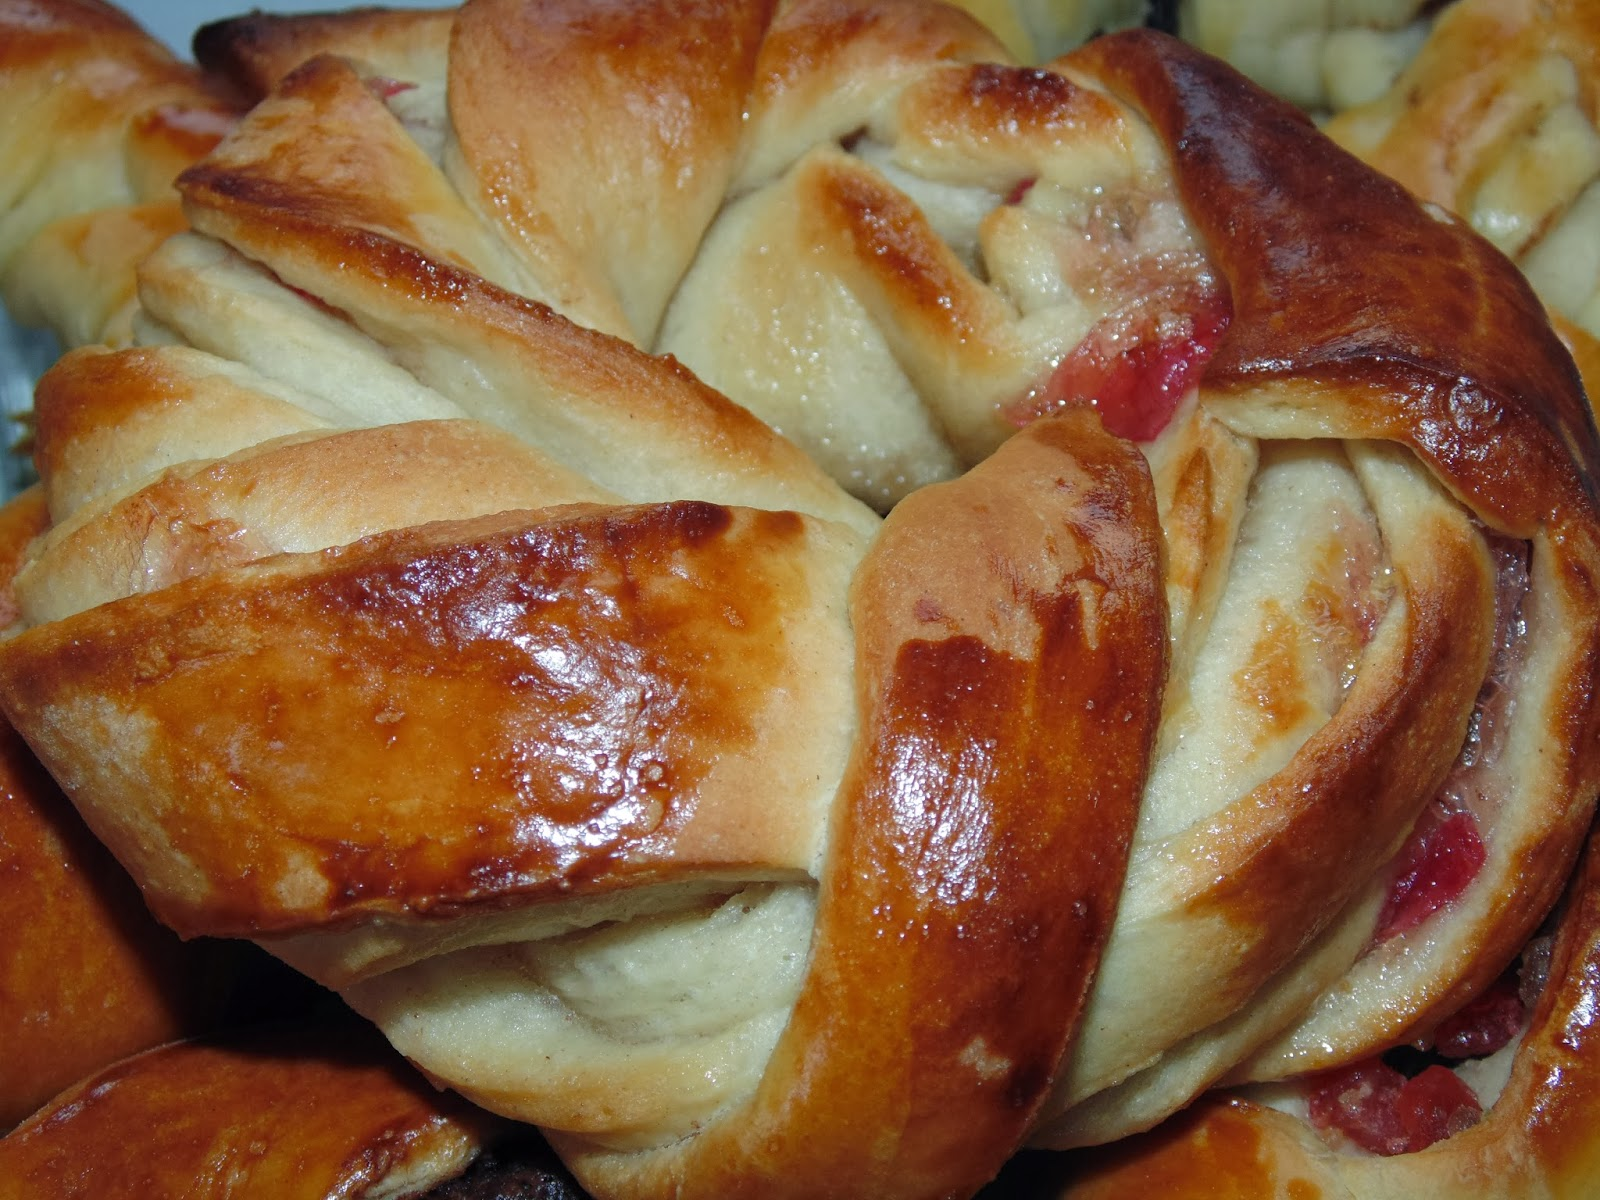 Sweet pretzels - recipe (including photos) | Life in ...